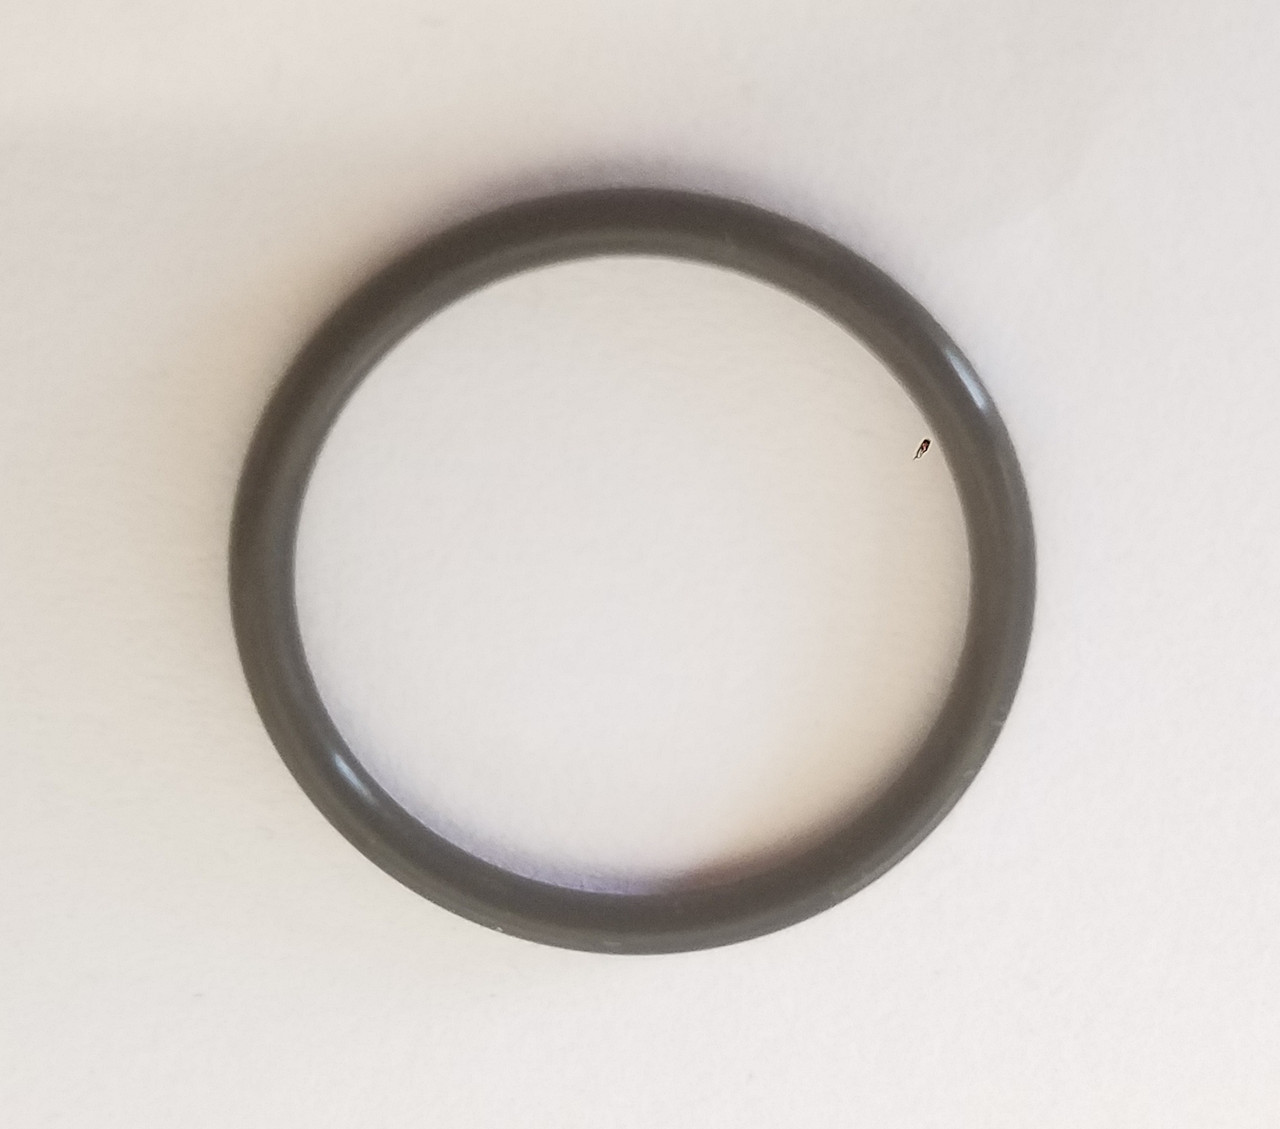 Spacer Oring- Toyota 4Runner, Land Cruiser, Pickup, T100 & Tacoma Fuel Injector Spacer Cup O-ring - 90301-19006